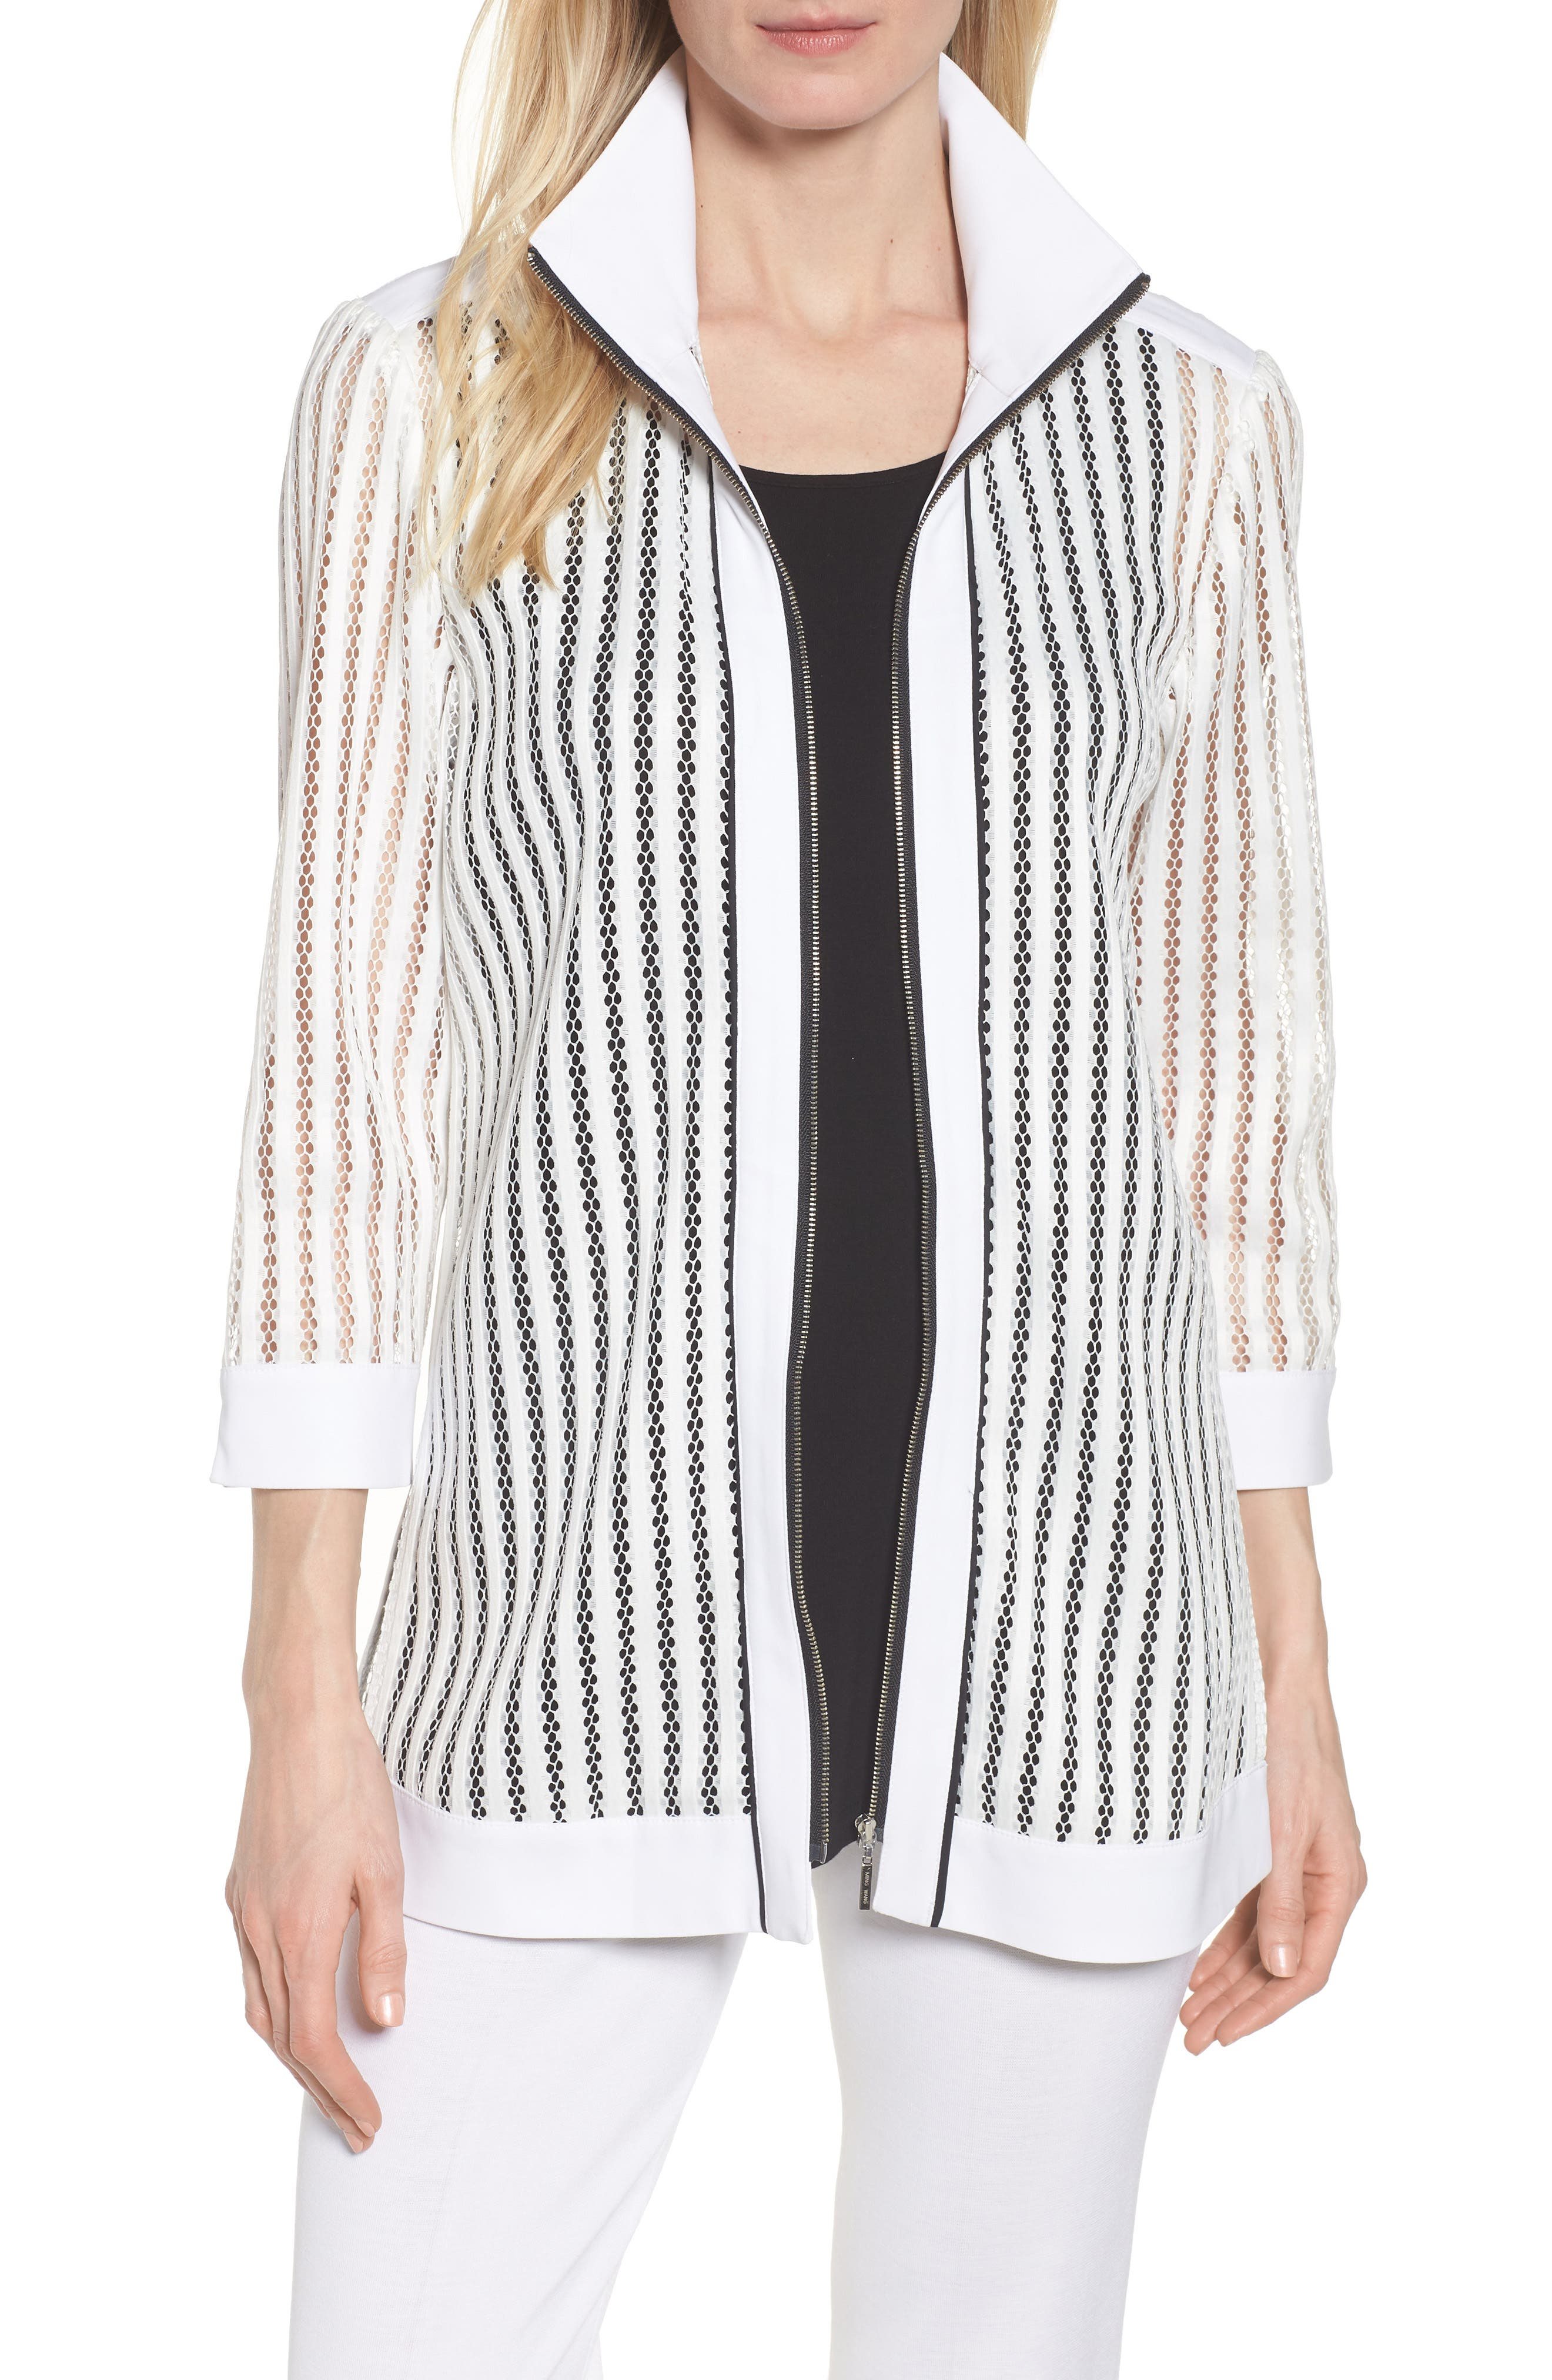 Ming Mang Open Stitch Sweater Jacket,                         Main,                         color, White/ Black